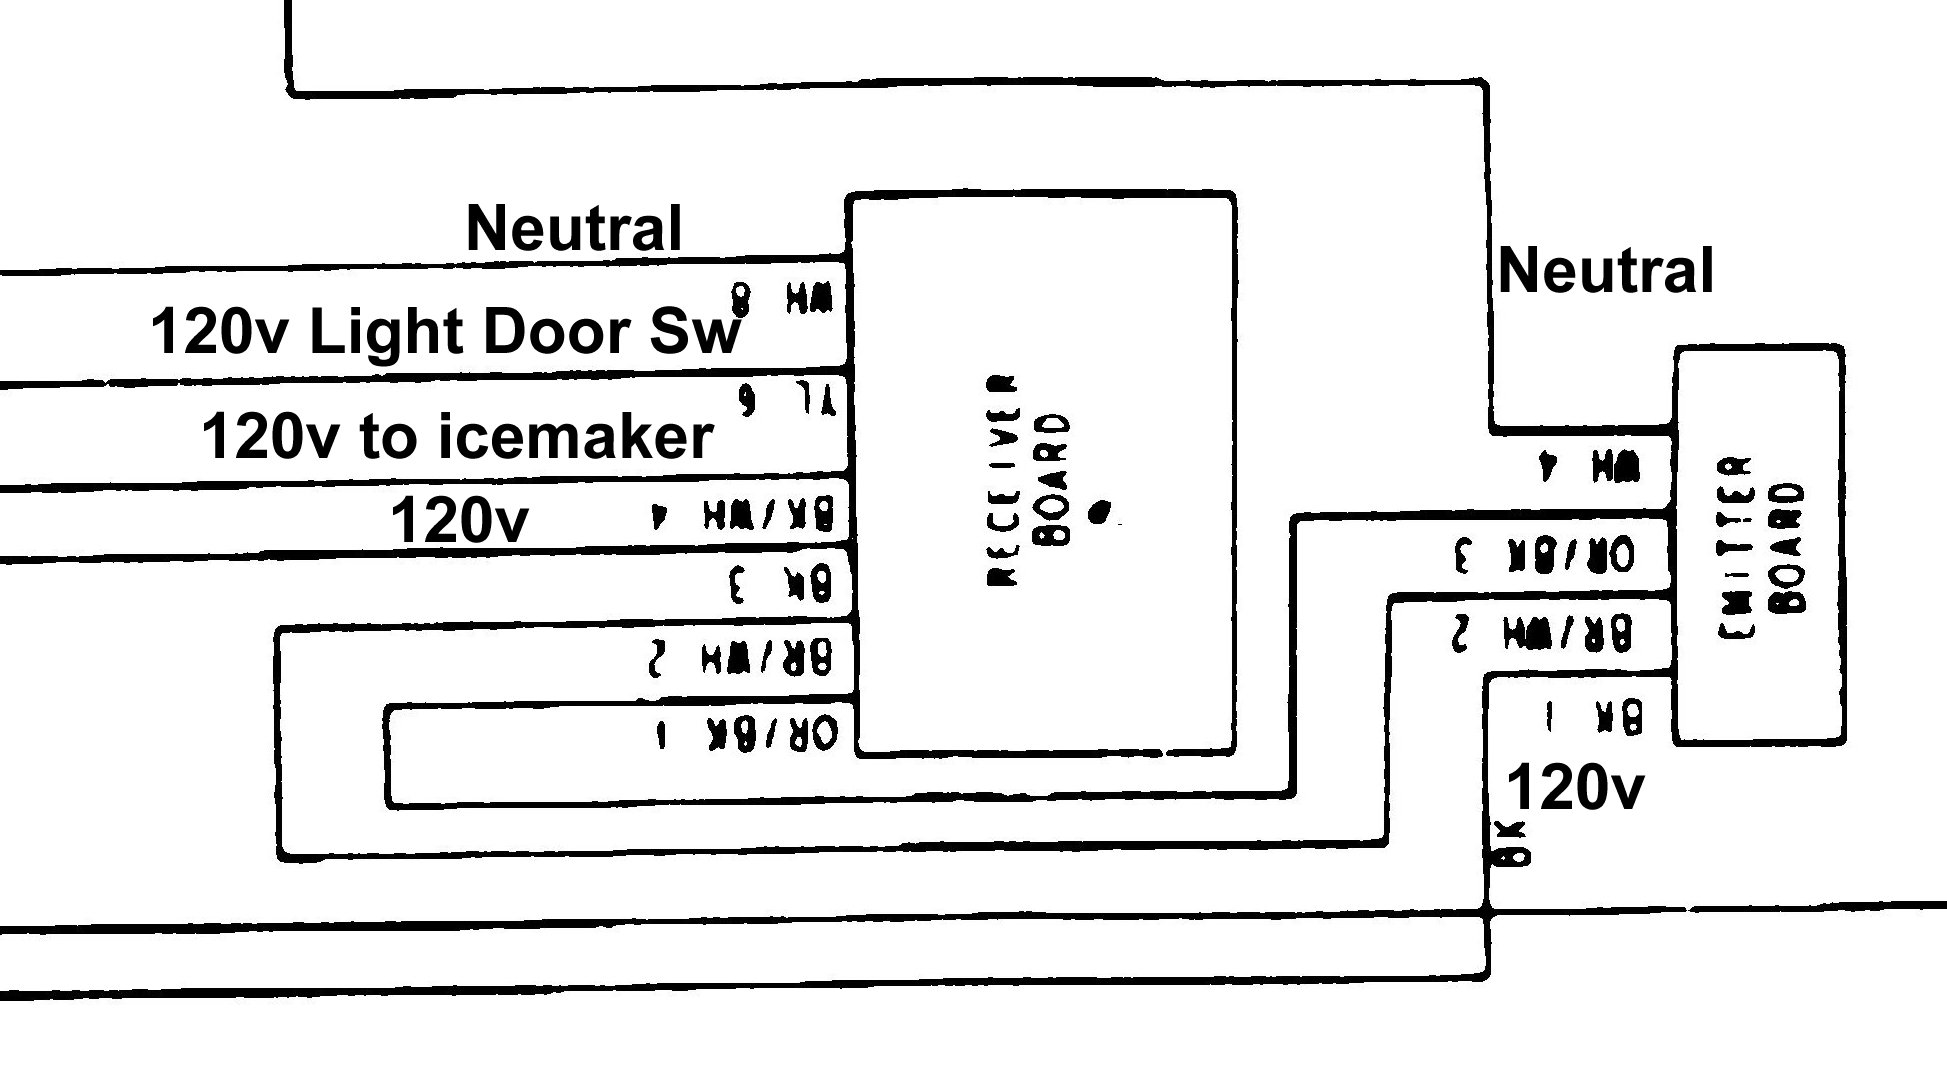 whirlpool fridge icemaker boards kenmore side by side no ice ice maker wiring schematic at crackthecode.co